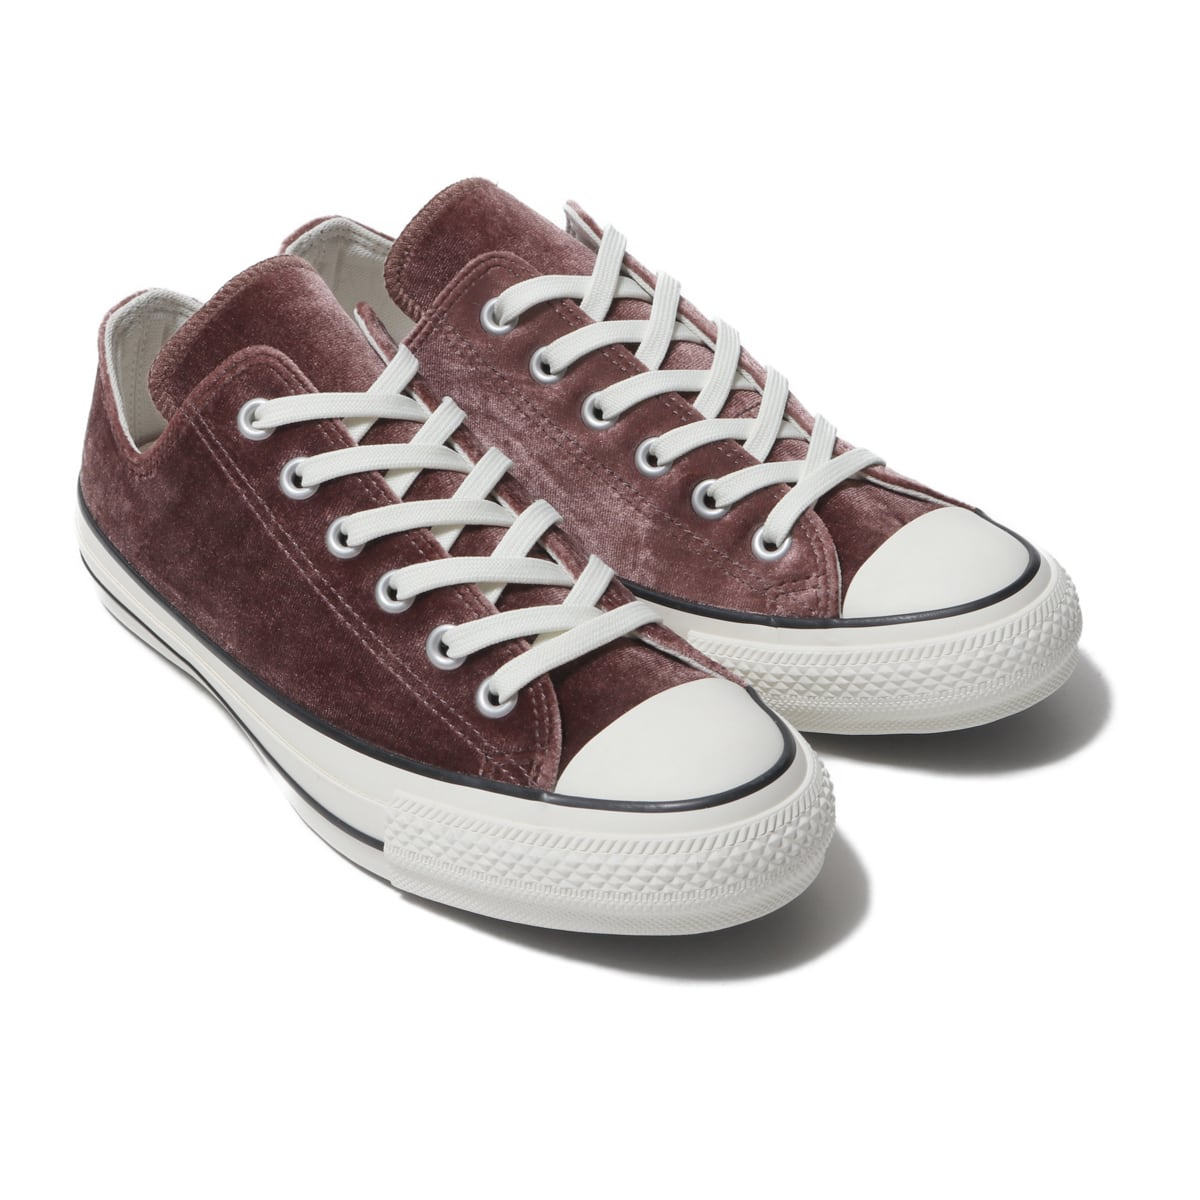 CONVERSE ALL STAR 100 VELVET OX BROWN 19HO-S_photo_large